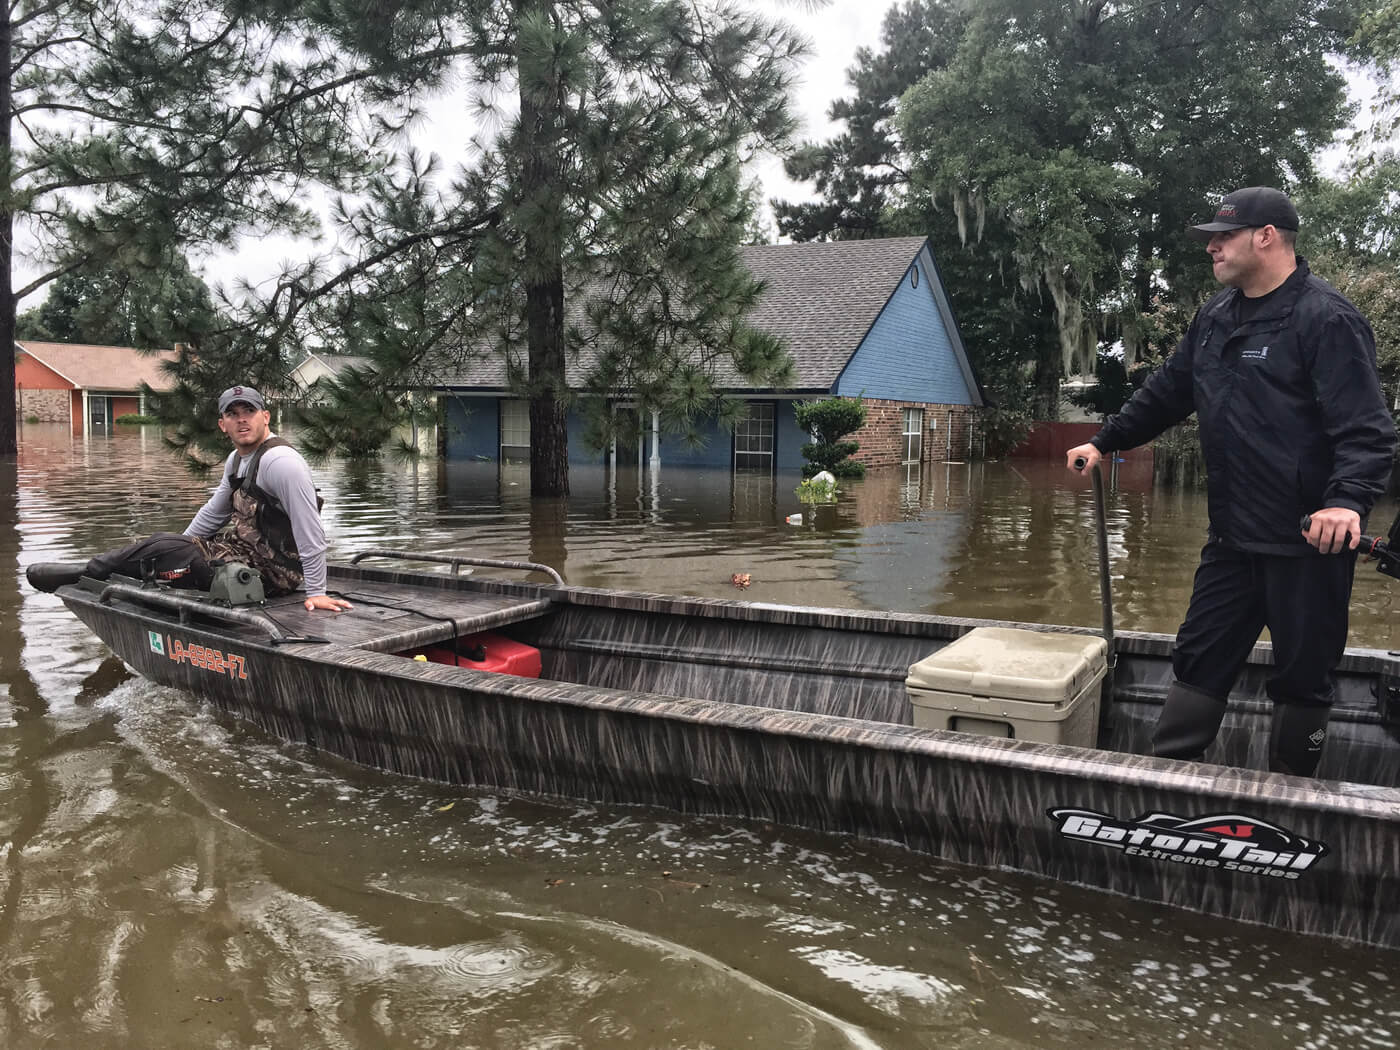 Gator-Tail boat ferrying two men through flooded streets after Hurricane